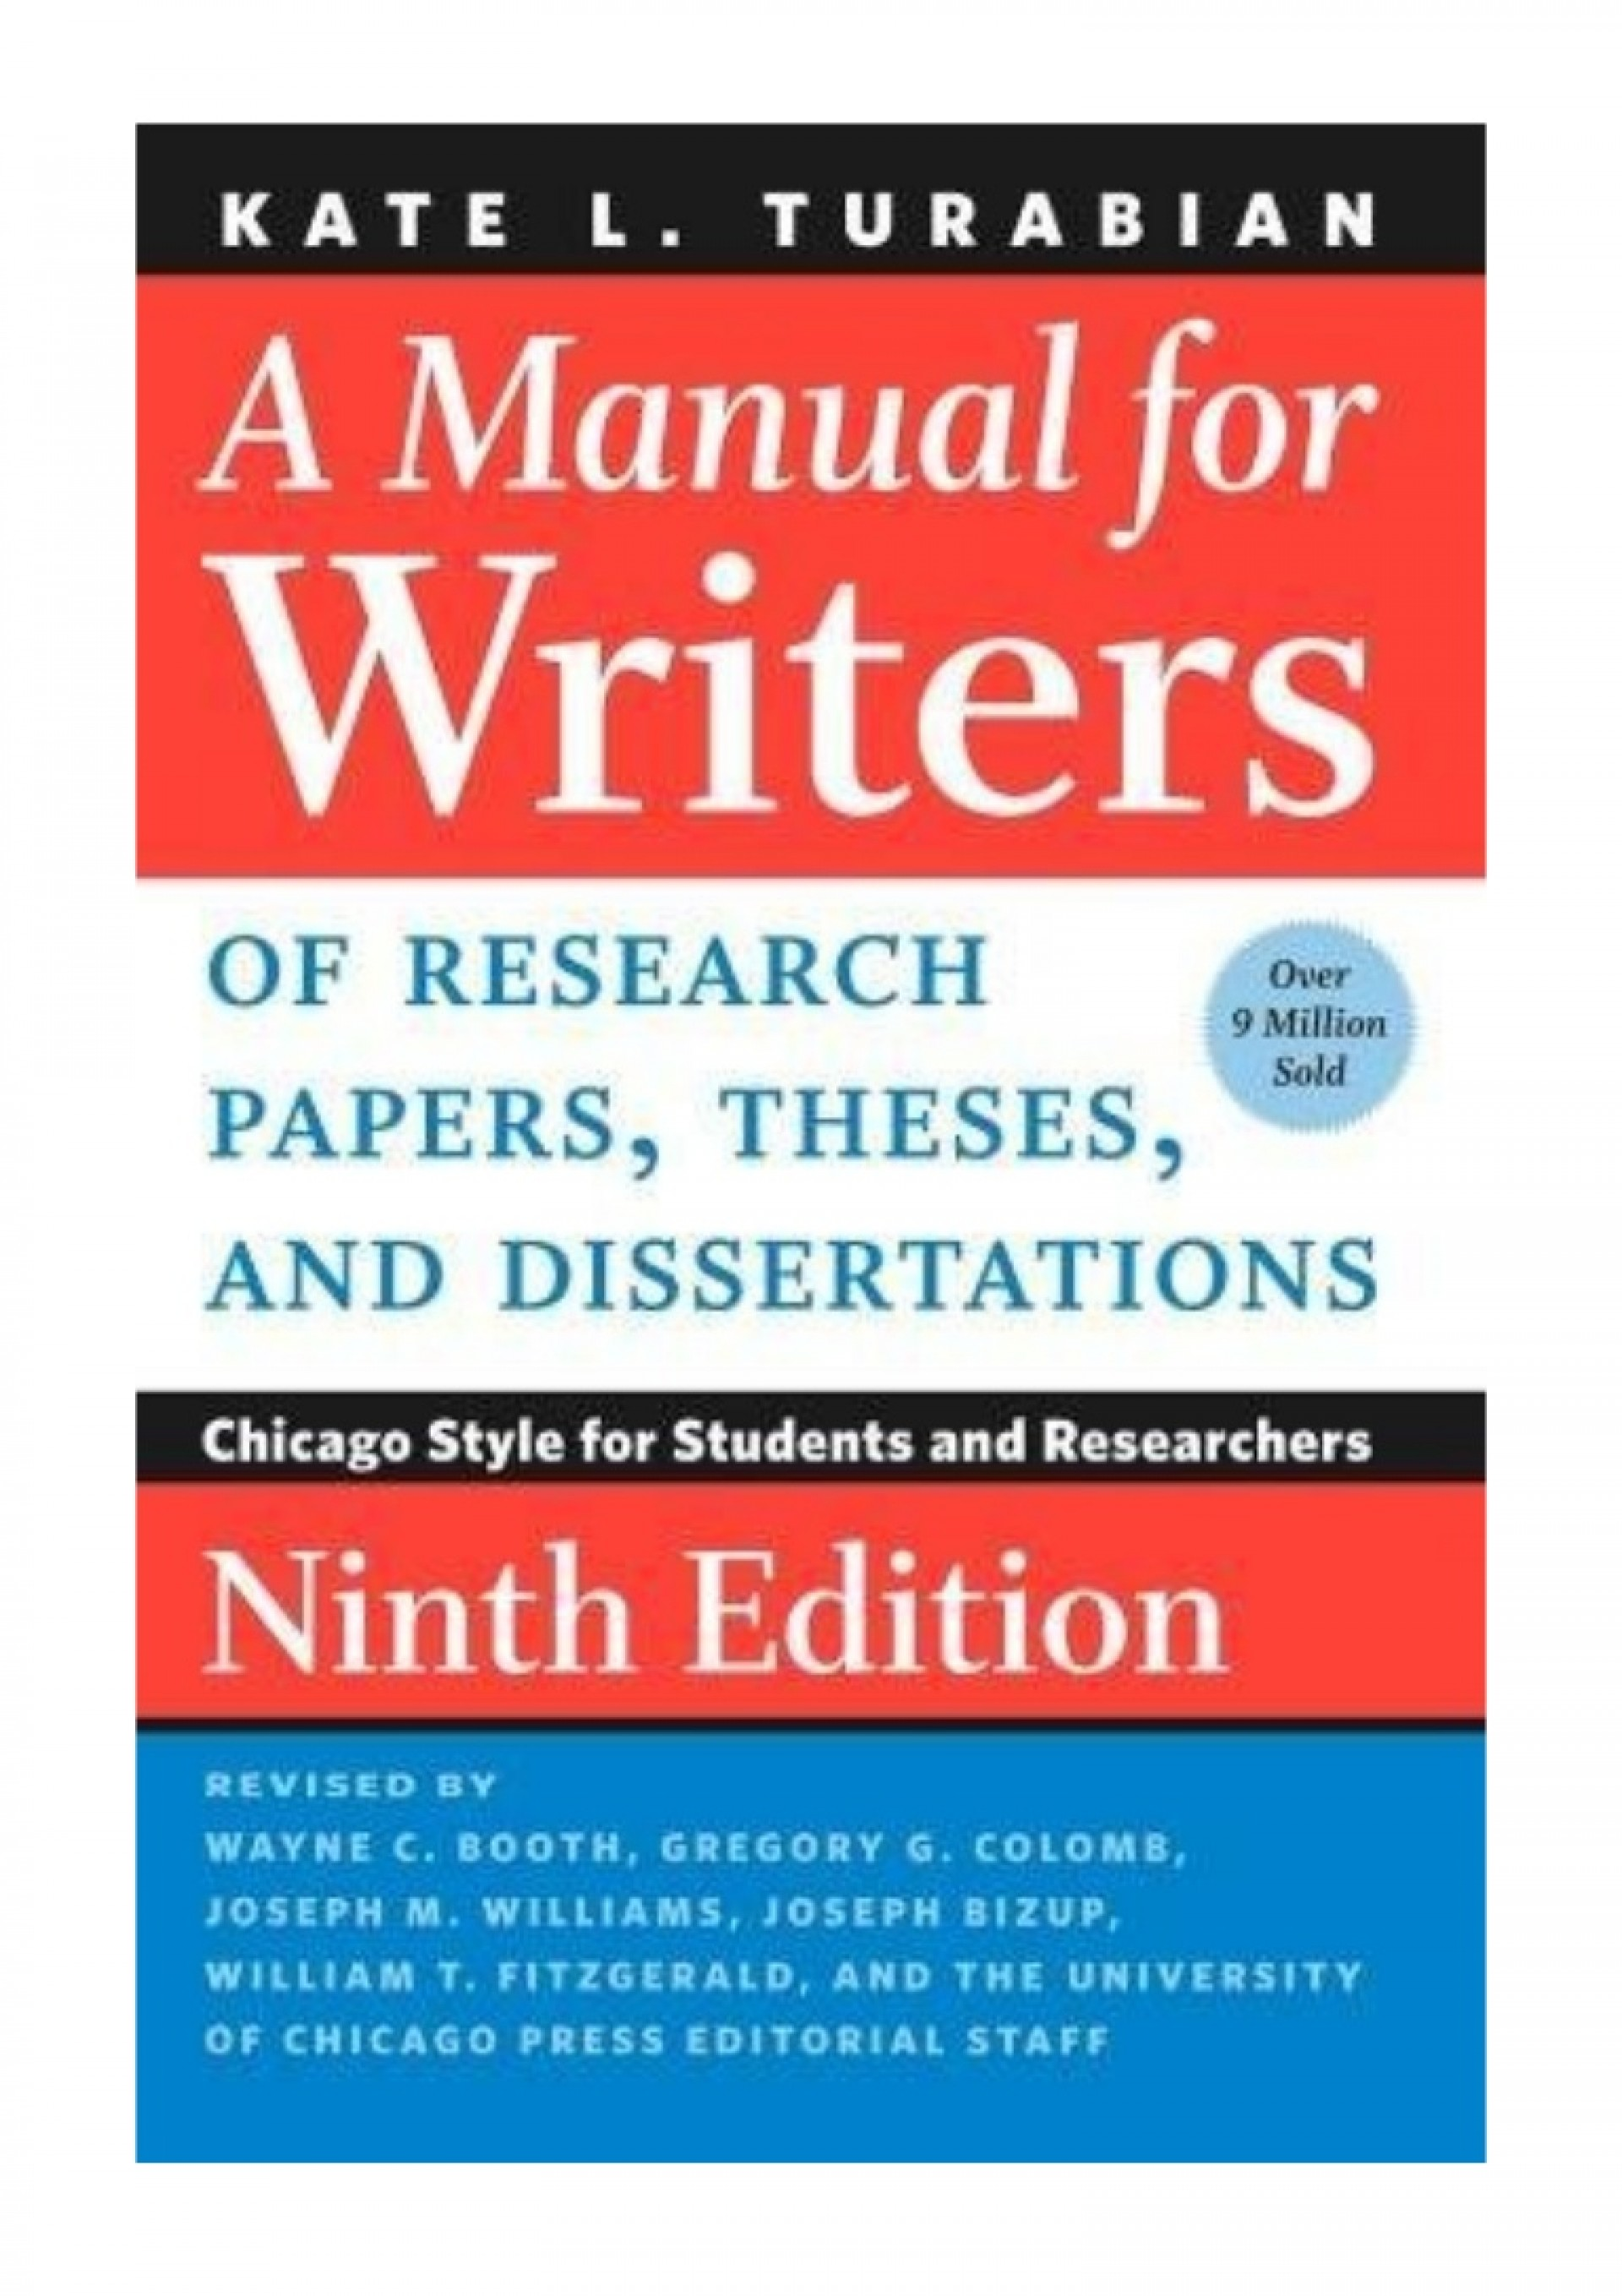 008 Manual For Writers Of Research Papers Theses And Dissertations Chicago Style Students Paper 022643057x Amanualforwritersofresearchpapersthesesanddissertationsnintheditionbykatel Rare A 1920